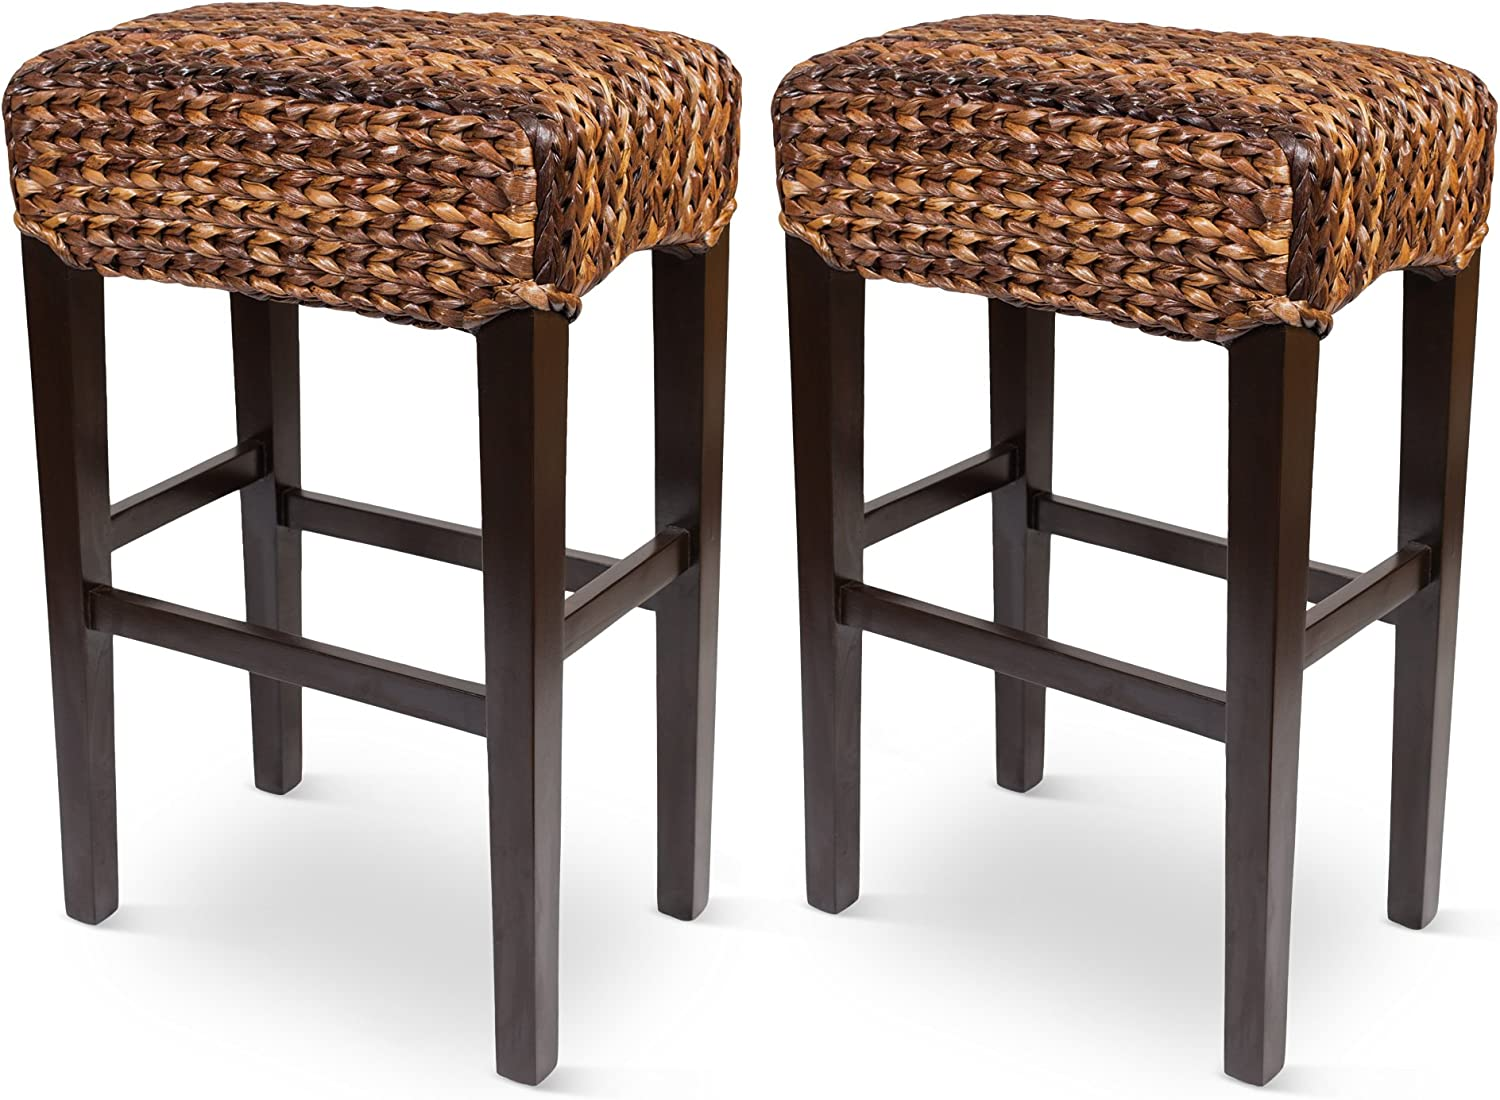 Bird Rock Hand Woven Seagrass Backless Barstool Bar Height – Set of 2 – Mahogany Wood Frame – Fully Assembled